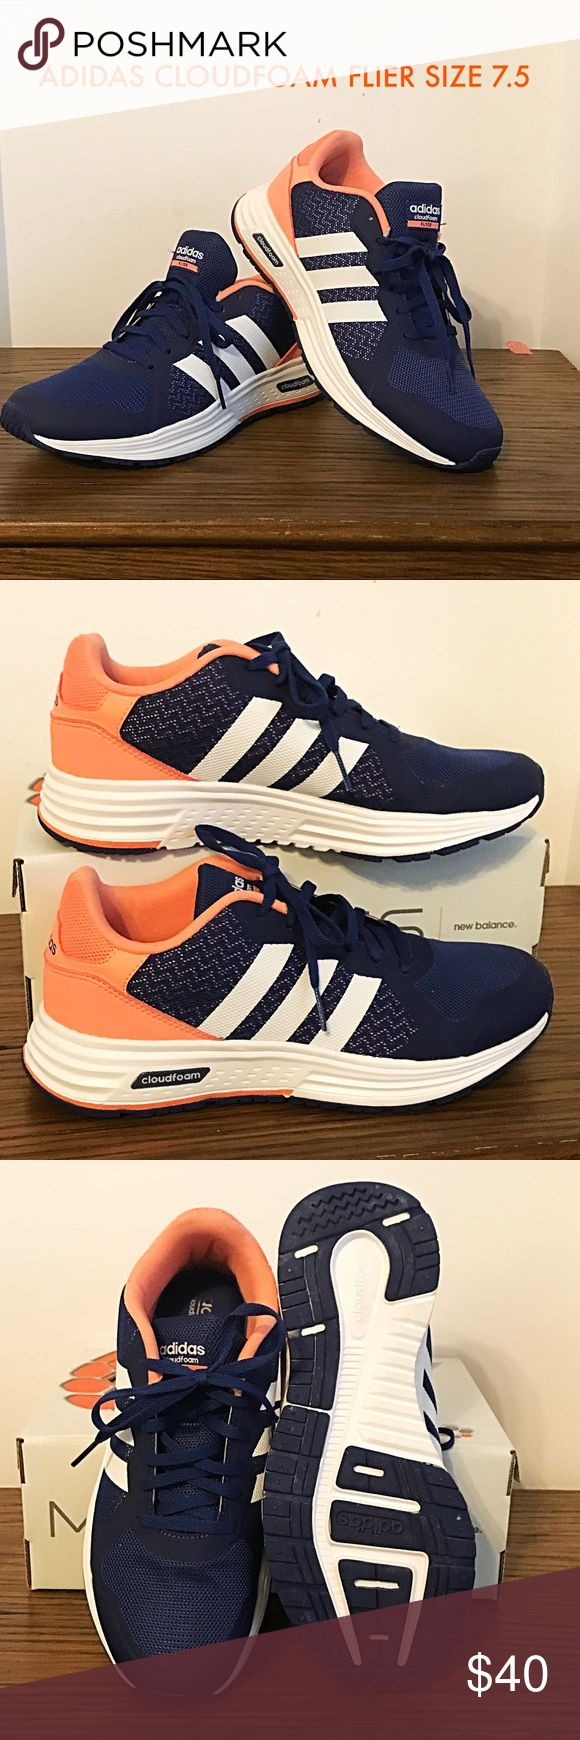 """ADIDAS CLOUDFOAM FLIER RUNNING SHOE 7.5 NWOT FAVE RUNNING SHOE! I own a pair myself and was gifted these. They have been worn once, literally JUST to try on. They Don't fit or I would keep them! If you are a size 8, these would fit, as they tend to run large- but I am usually an 8.5. MSRP: $74-$120. On Amazon now for $69. They are low profile and super cute, but have the most amazing comfort! It looks like wear on the inside """"Adidas"""" print, but it is from the price tag which was placed…"""